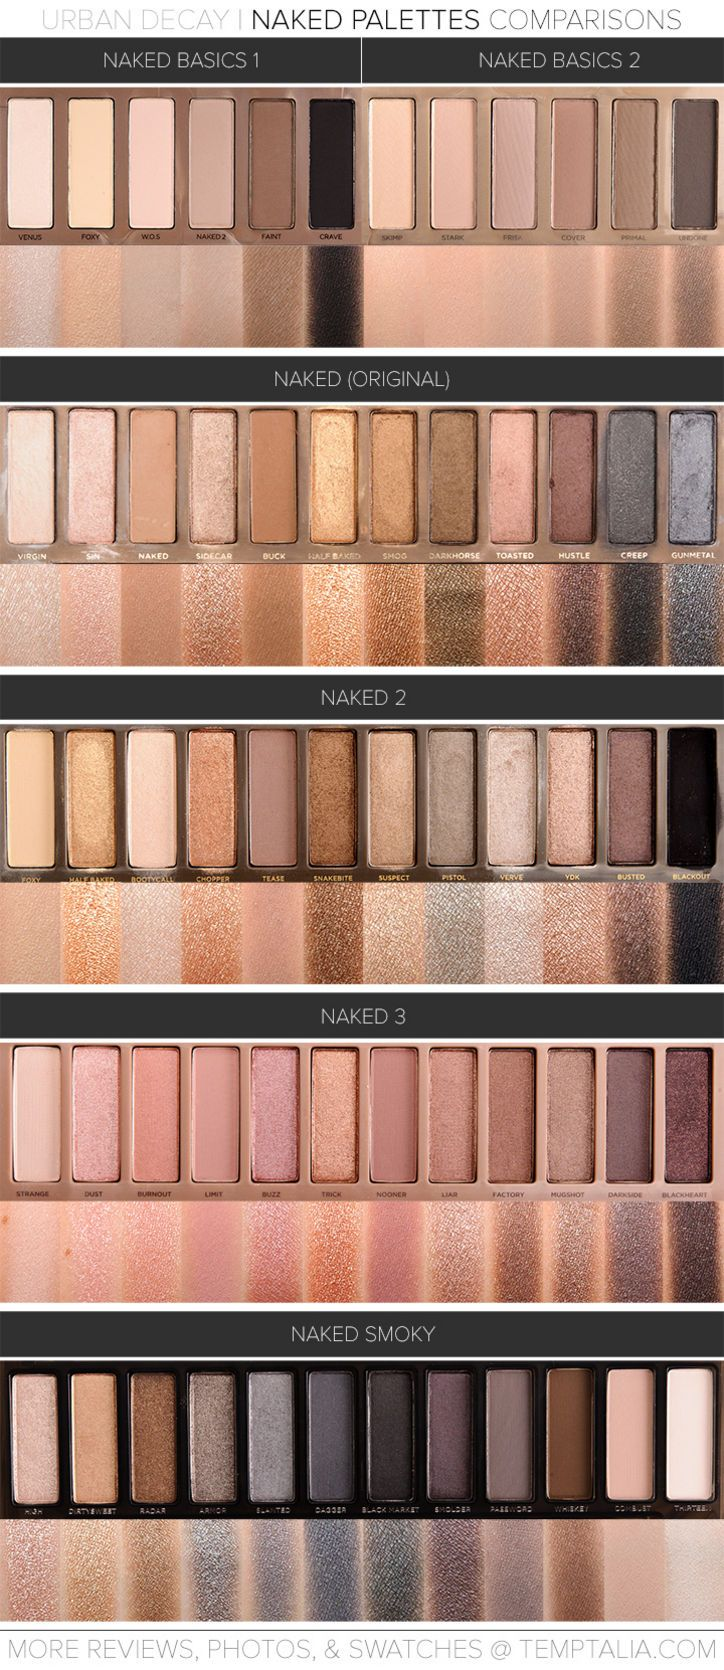 Naked 1&2,Smoky